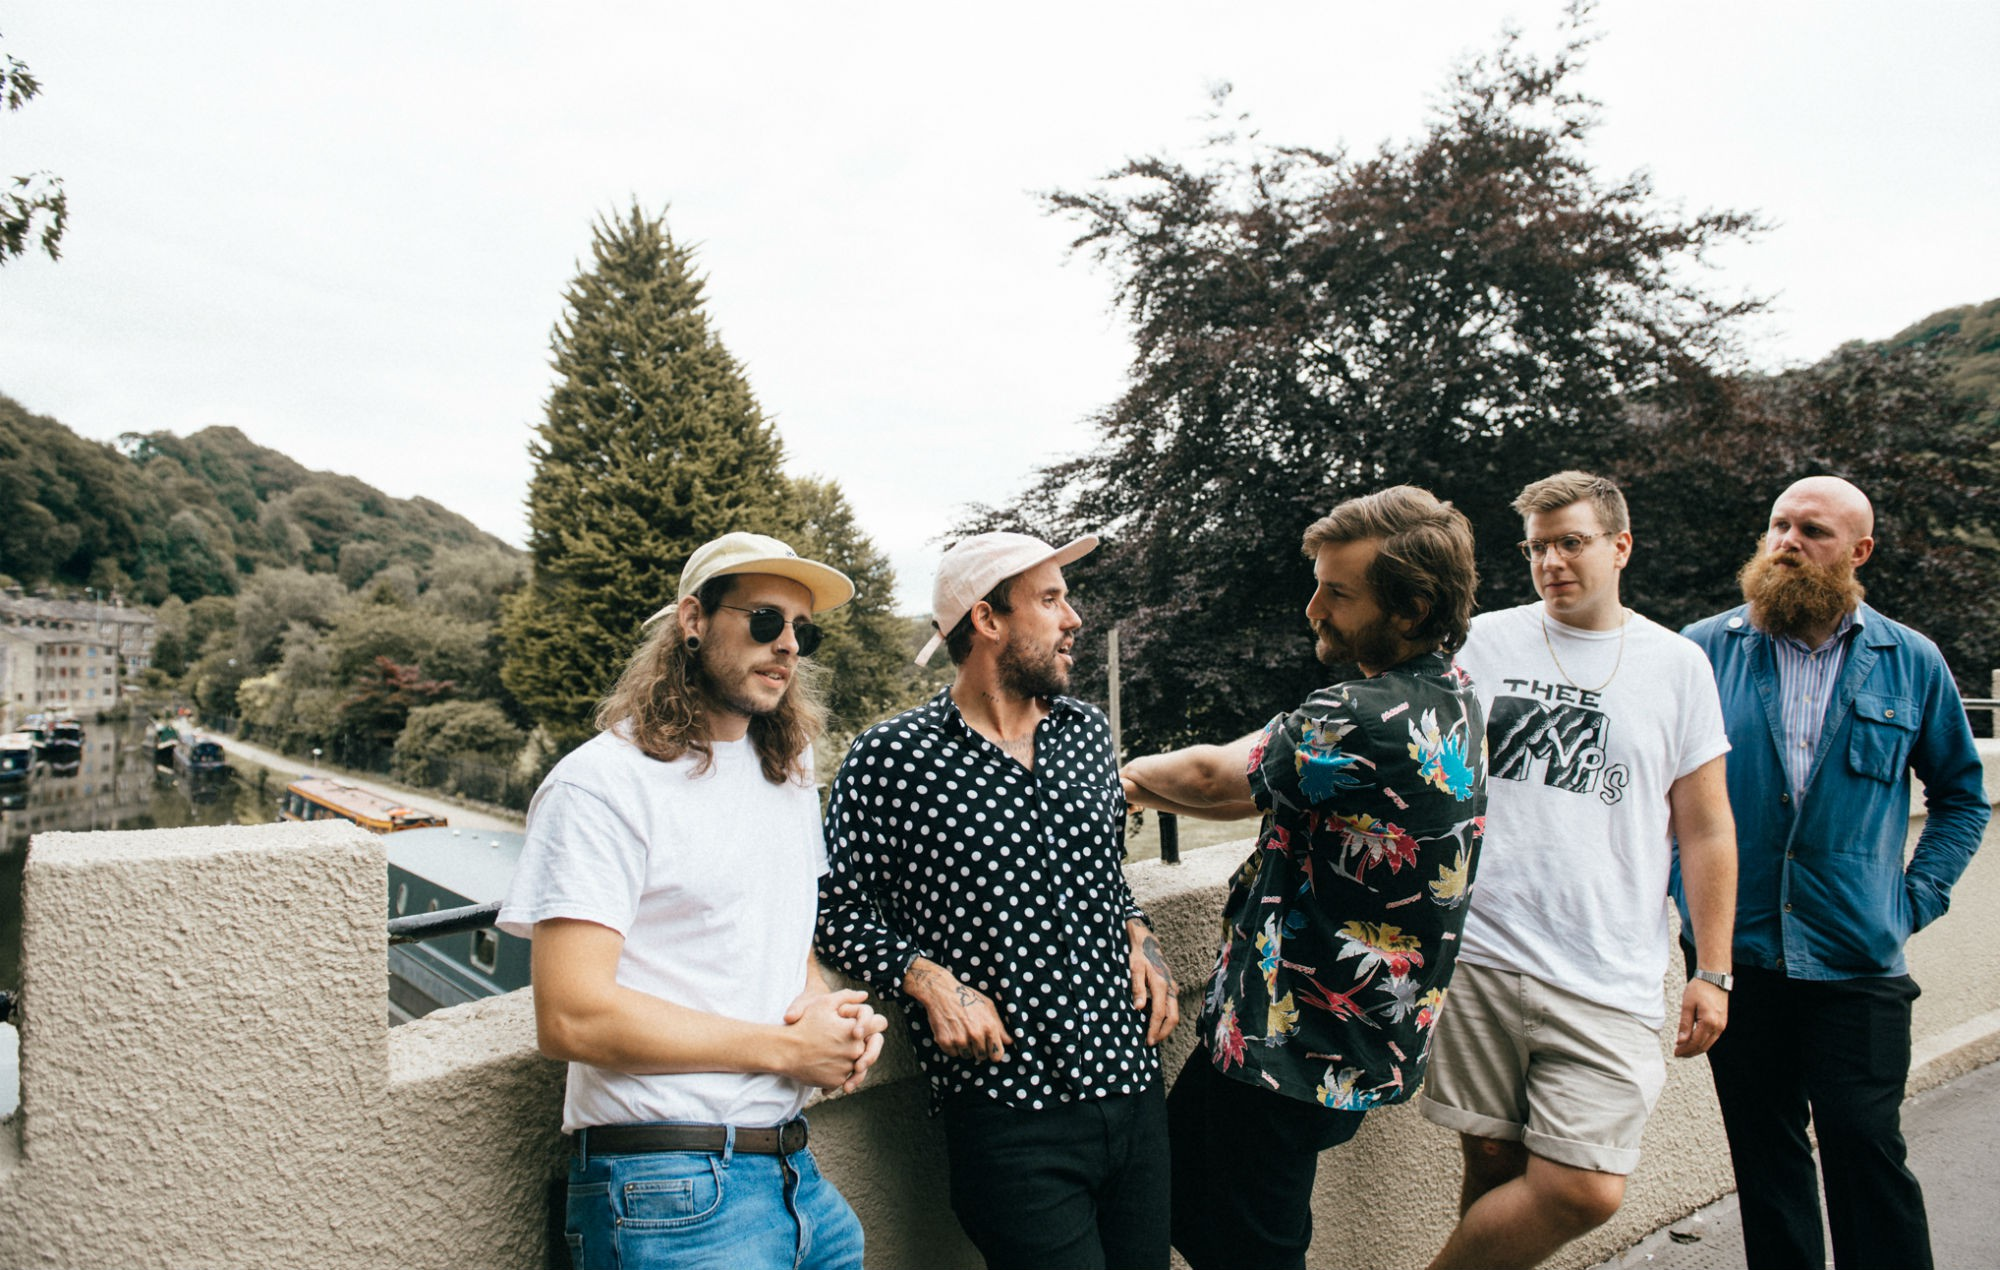 Idles Joy As An Act Of Resistance Review